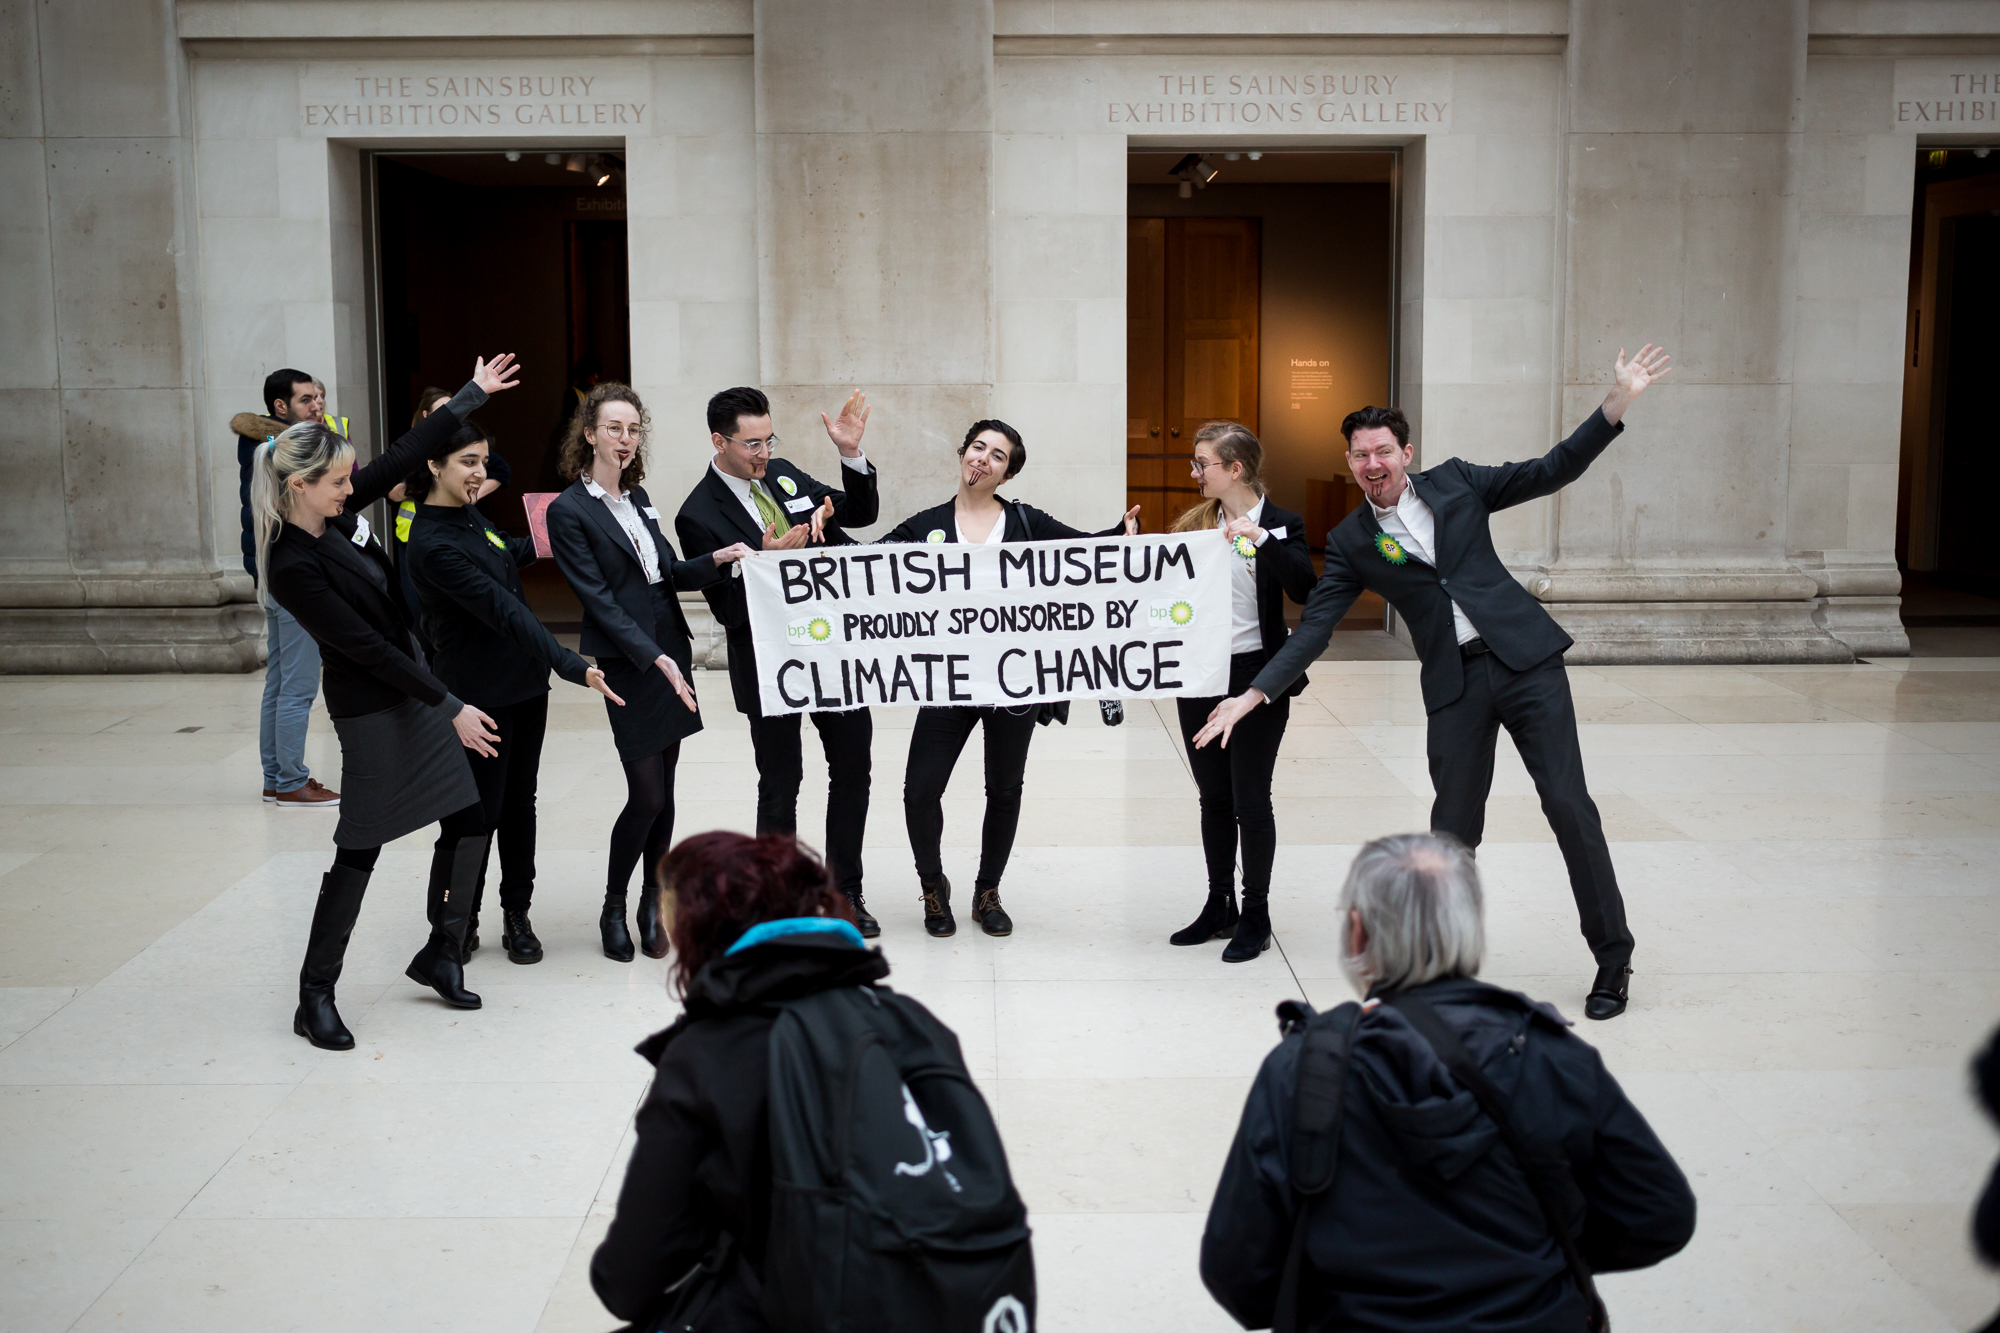 Protestors from Fossil Free London hold a banner about the British Museum's complicity in climate change